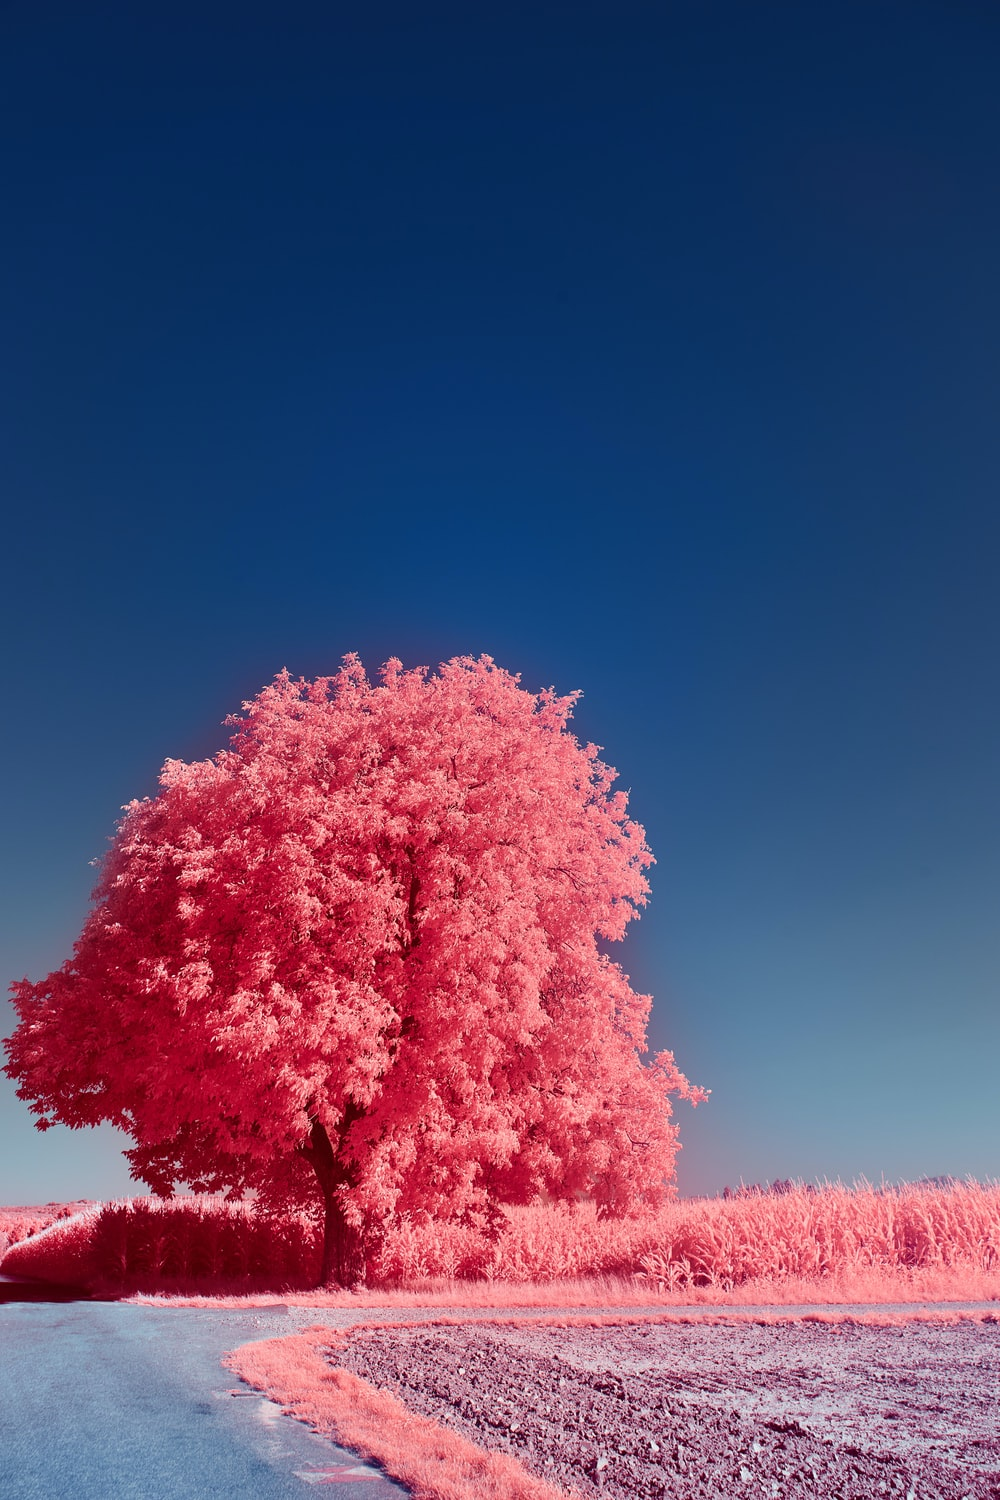 pink and white trees under blue sky during daytime